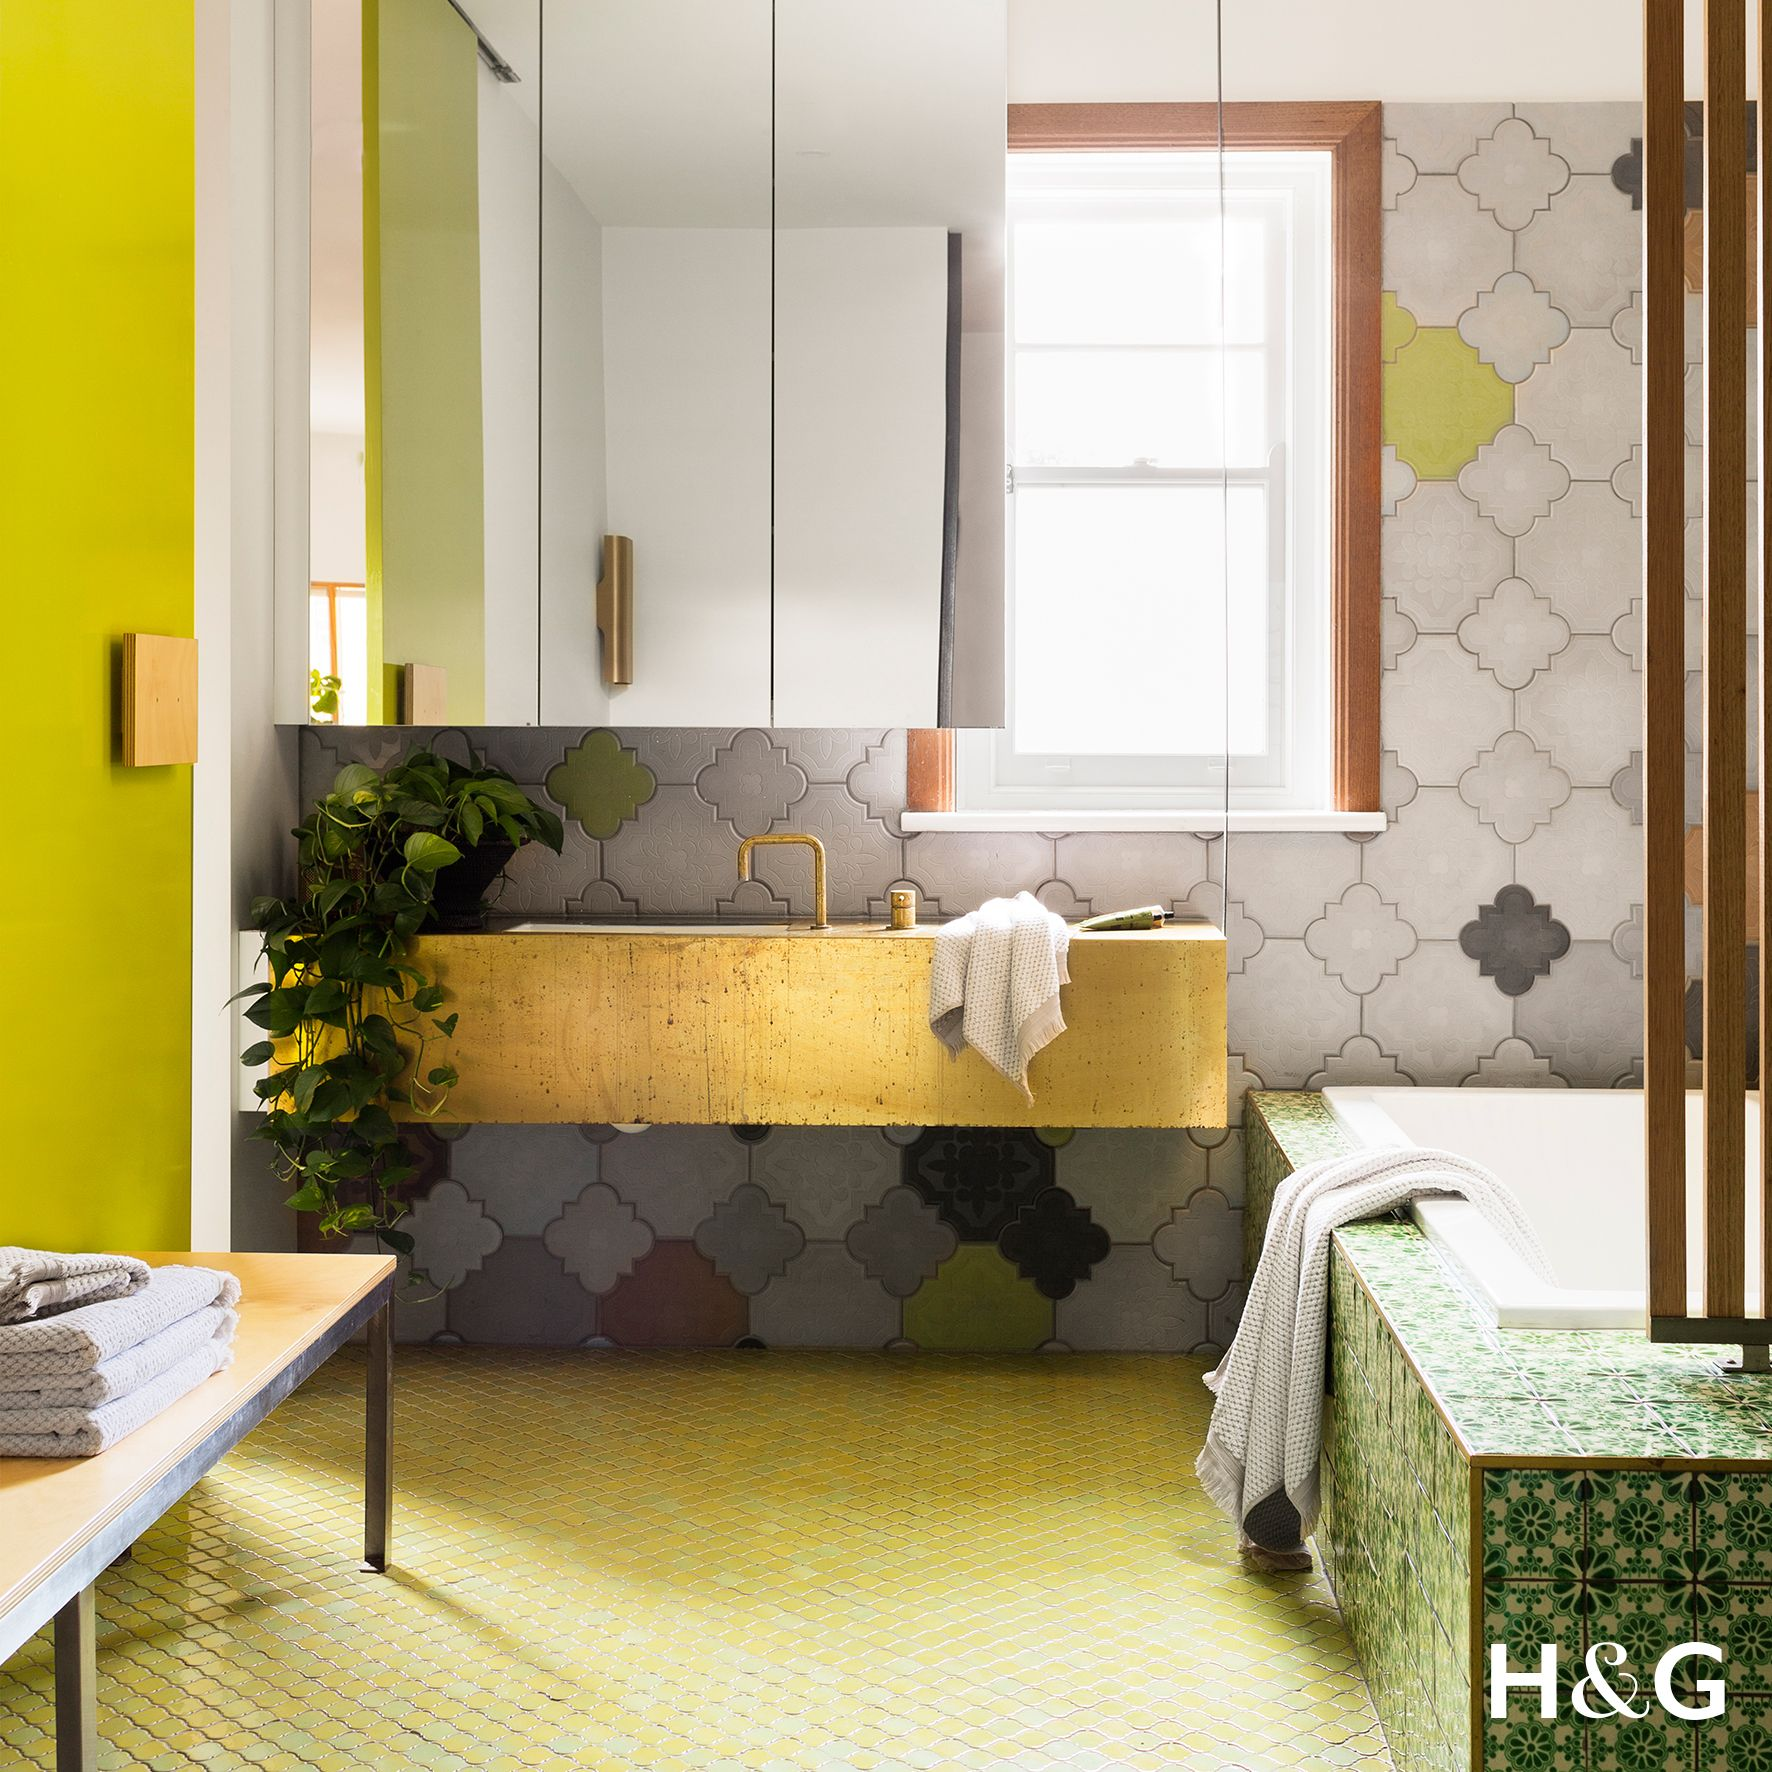 Bathroom Inspiration From Australian House Garden Magazine July 2017